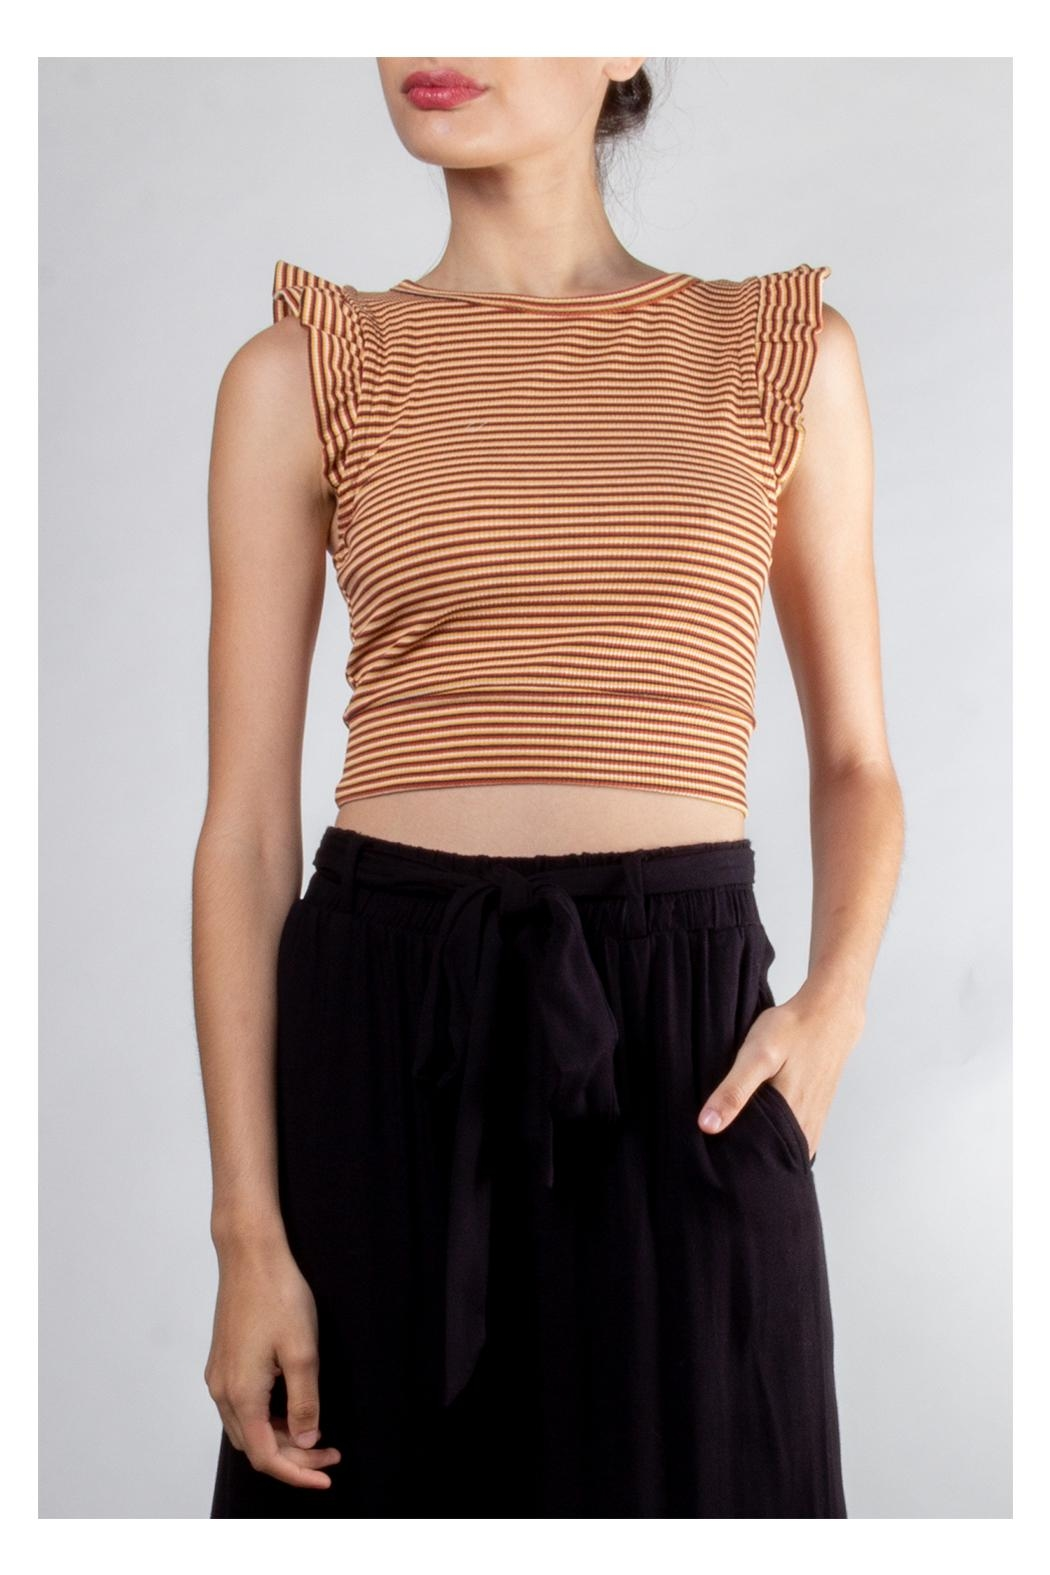 storia Ruffle Striped Crop-Top - Front Full Image